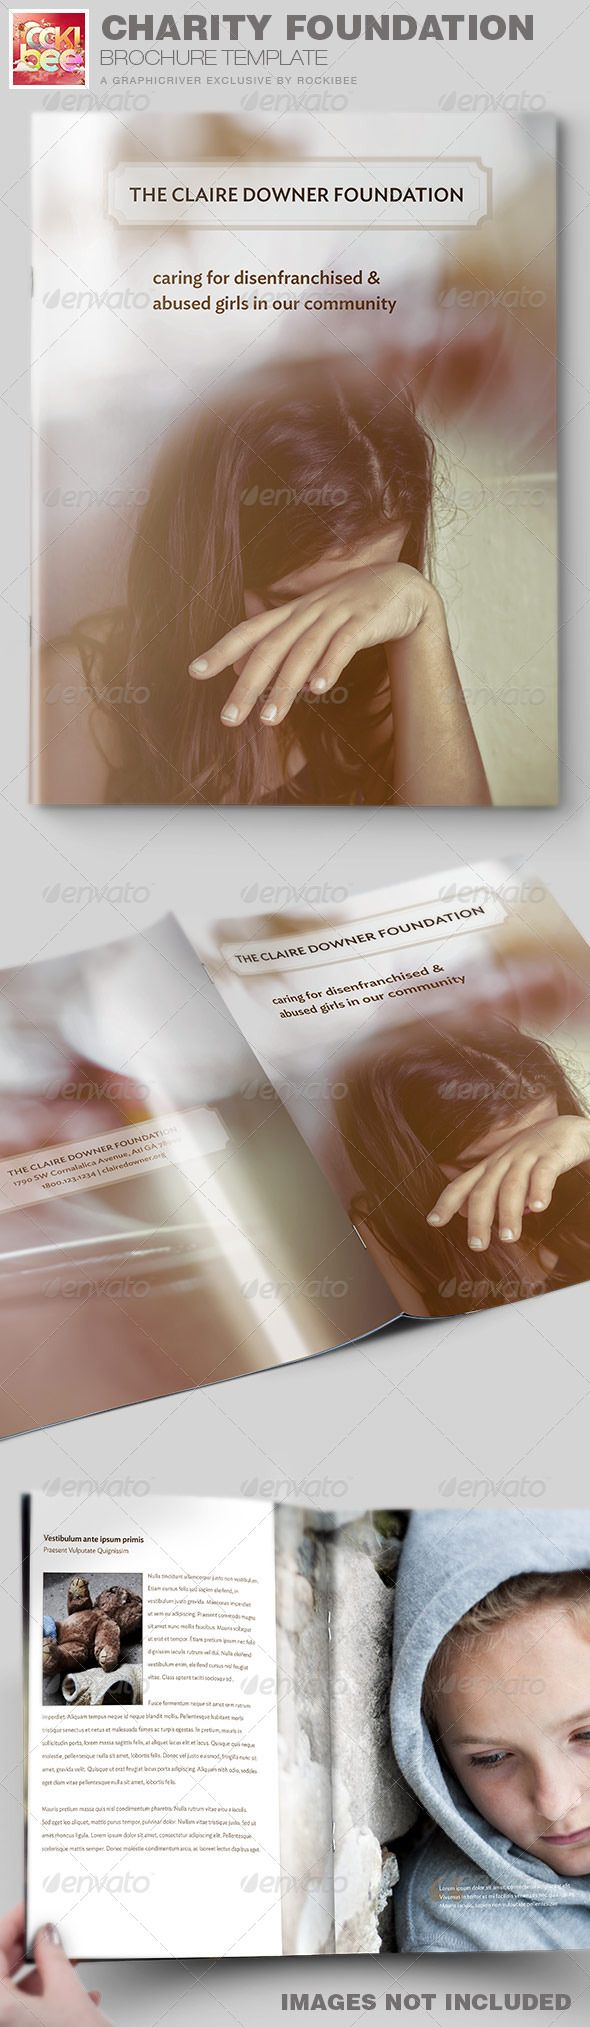 This Charity Foundation Brochure Template is sold exclusively on graphicriver. It is great for any type of Charity or Business that needs a clean, professional, modern brochure template for marketing their products and services.